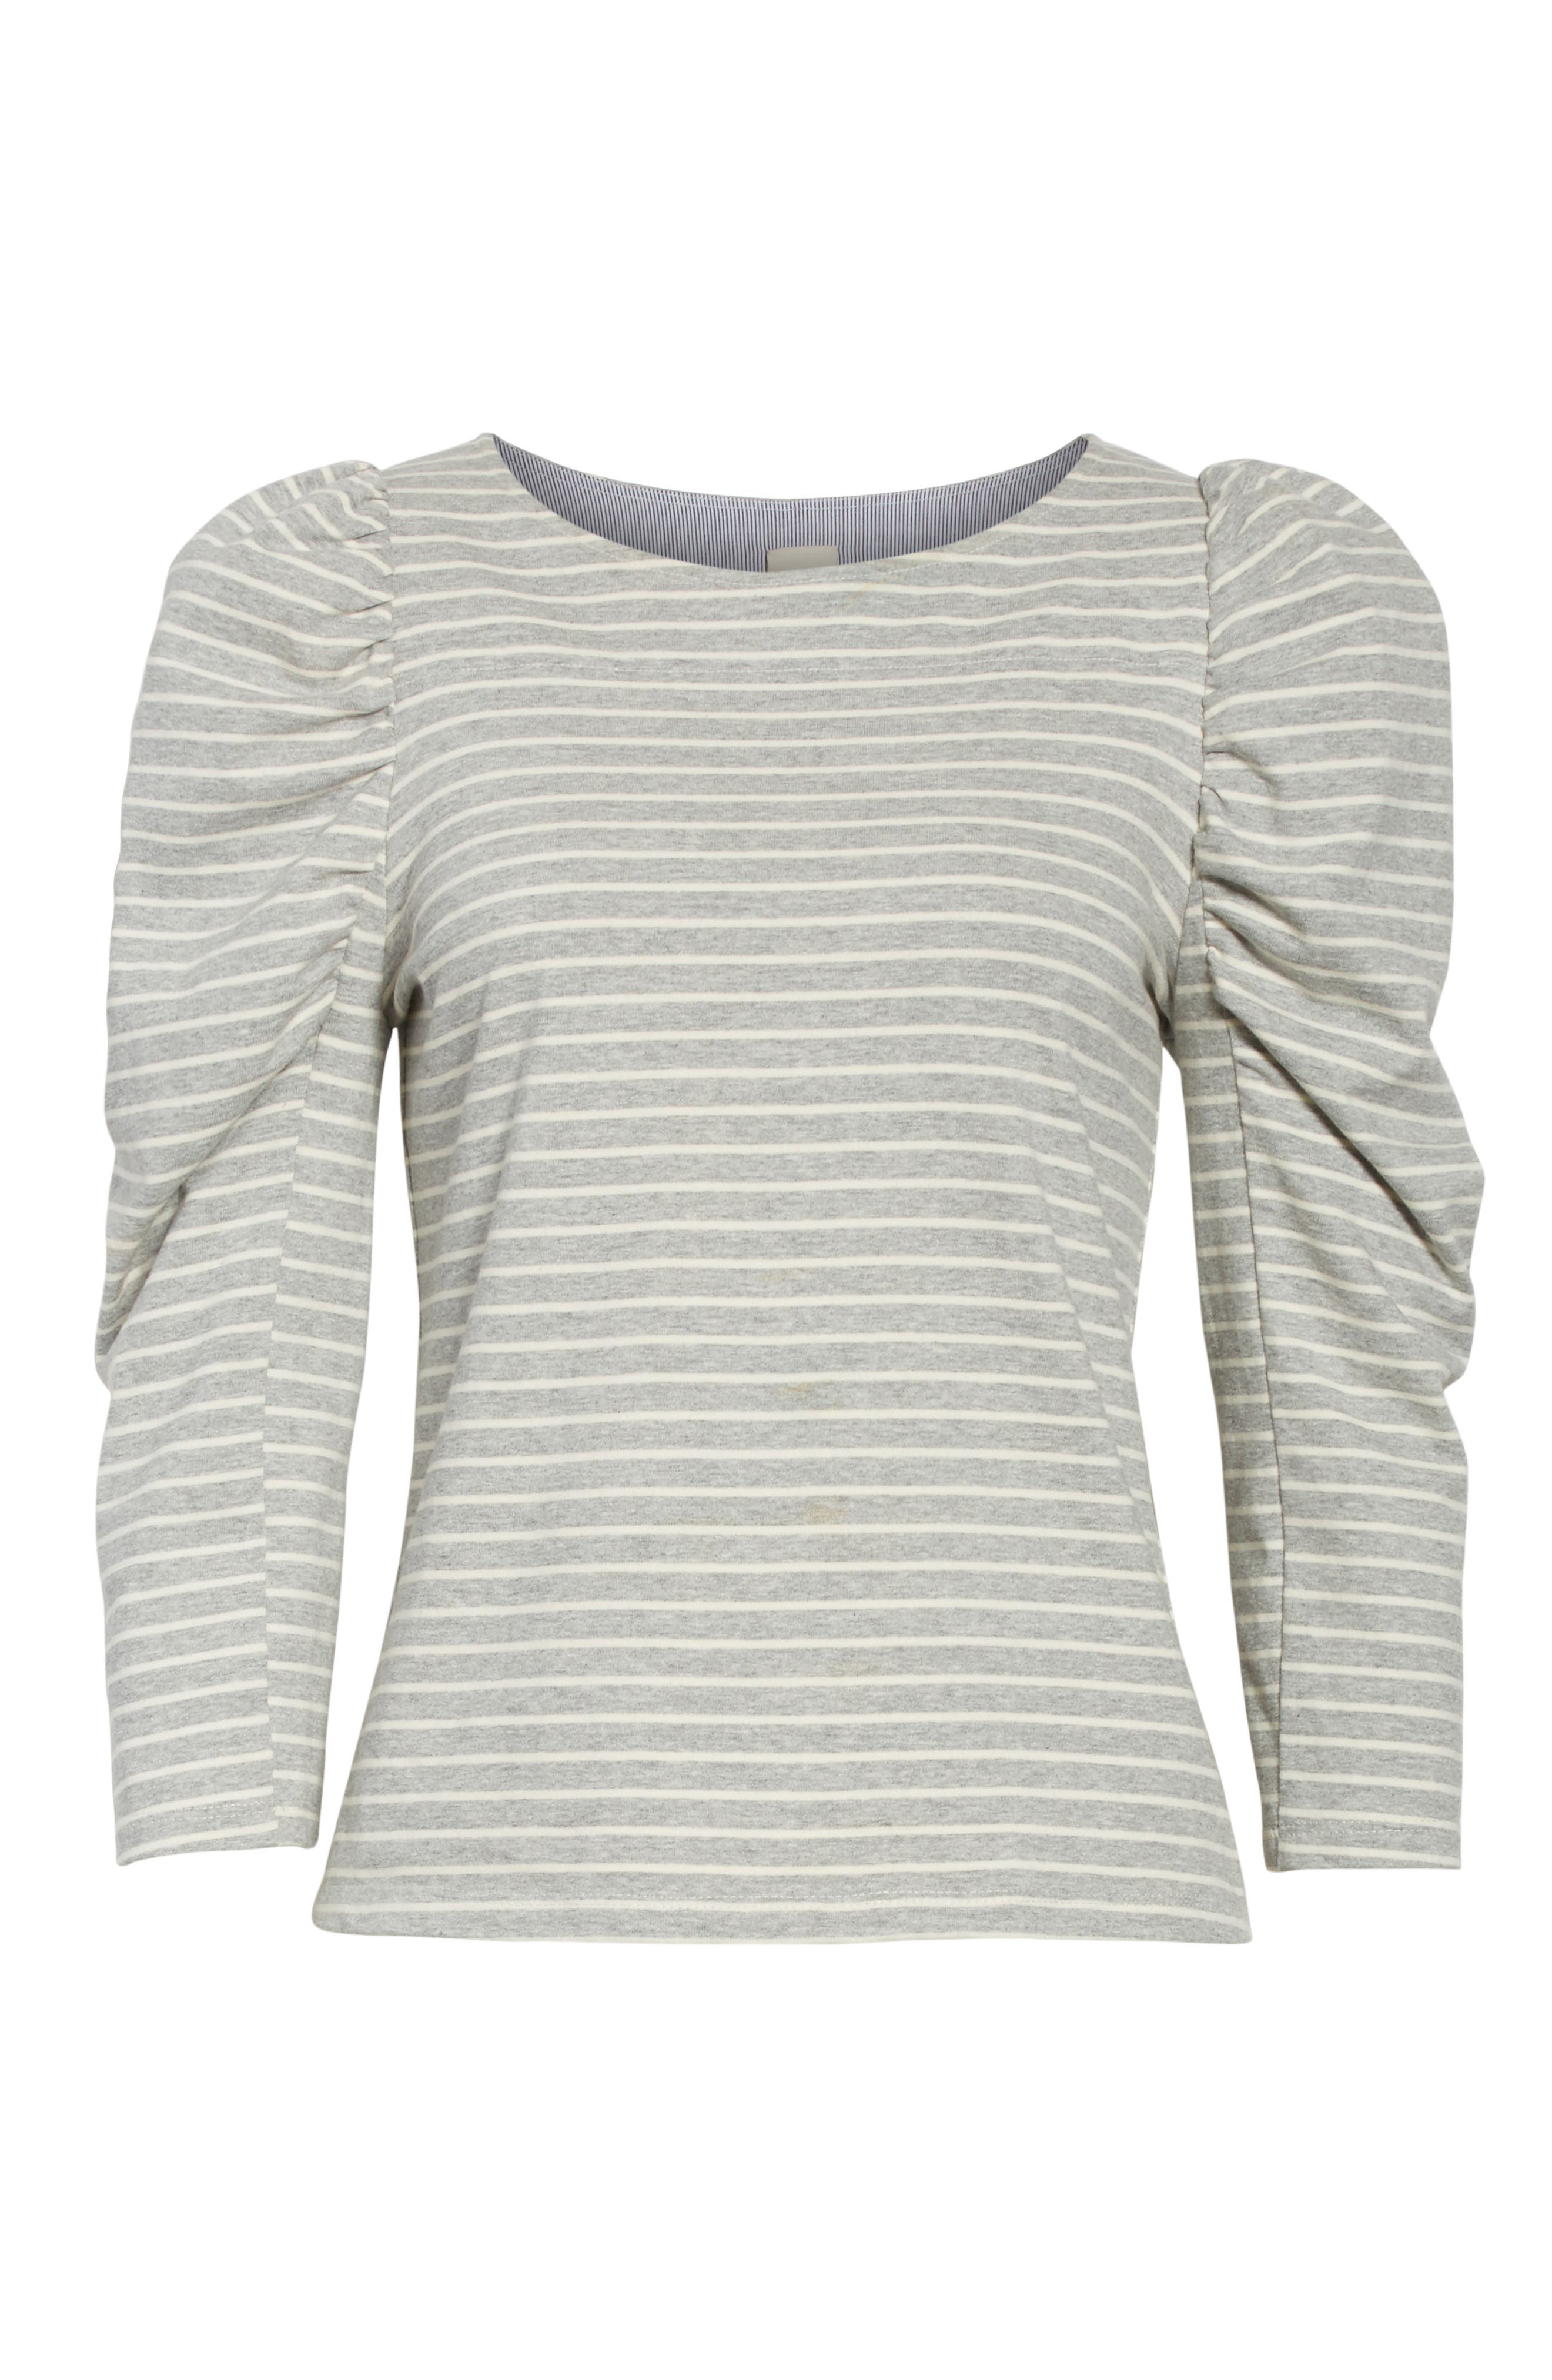 Stripe Jersey Top,                             Alternate thumbnail 7, color,                             Heather Grey Combo